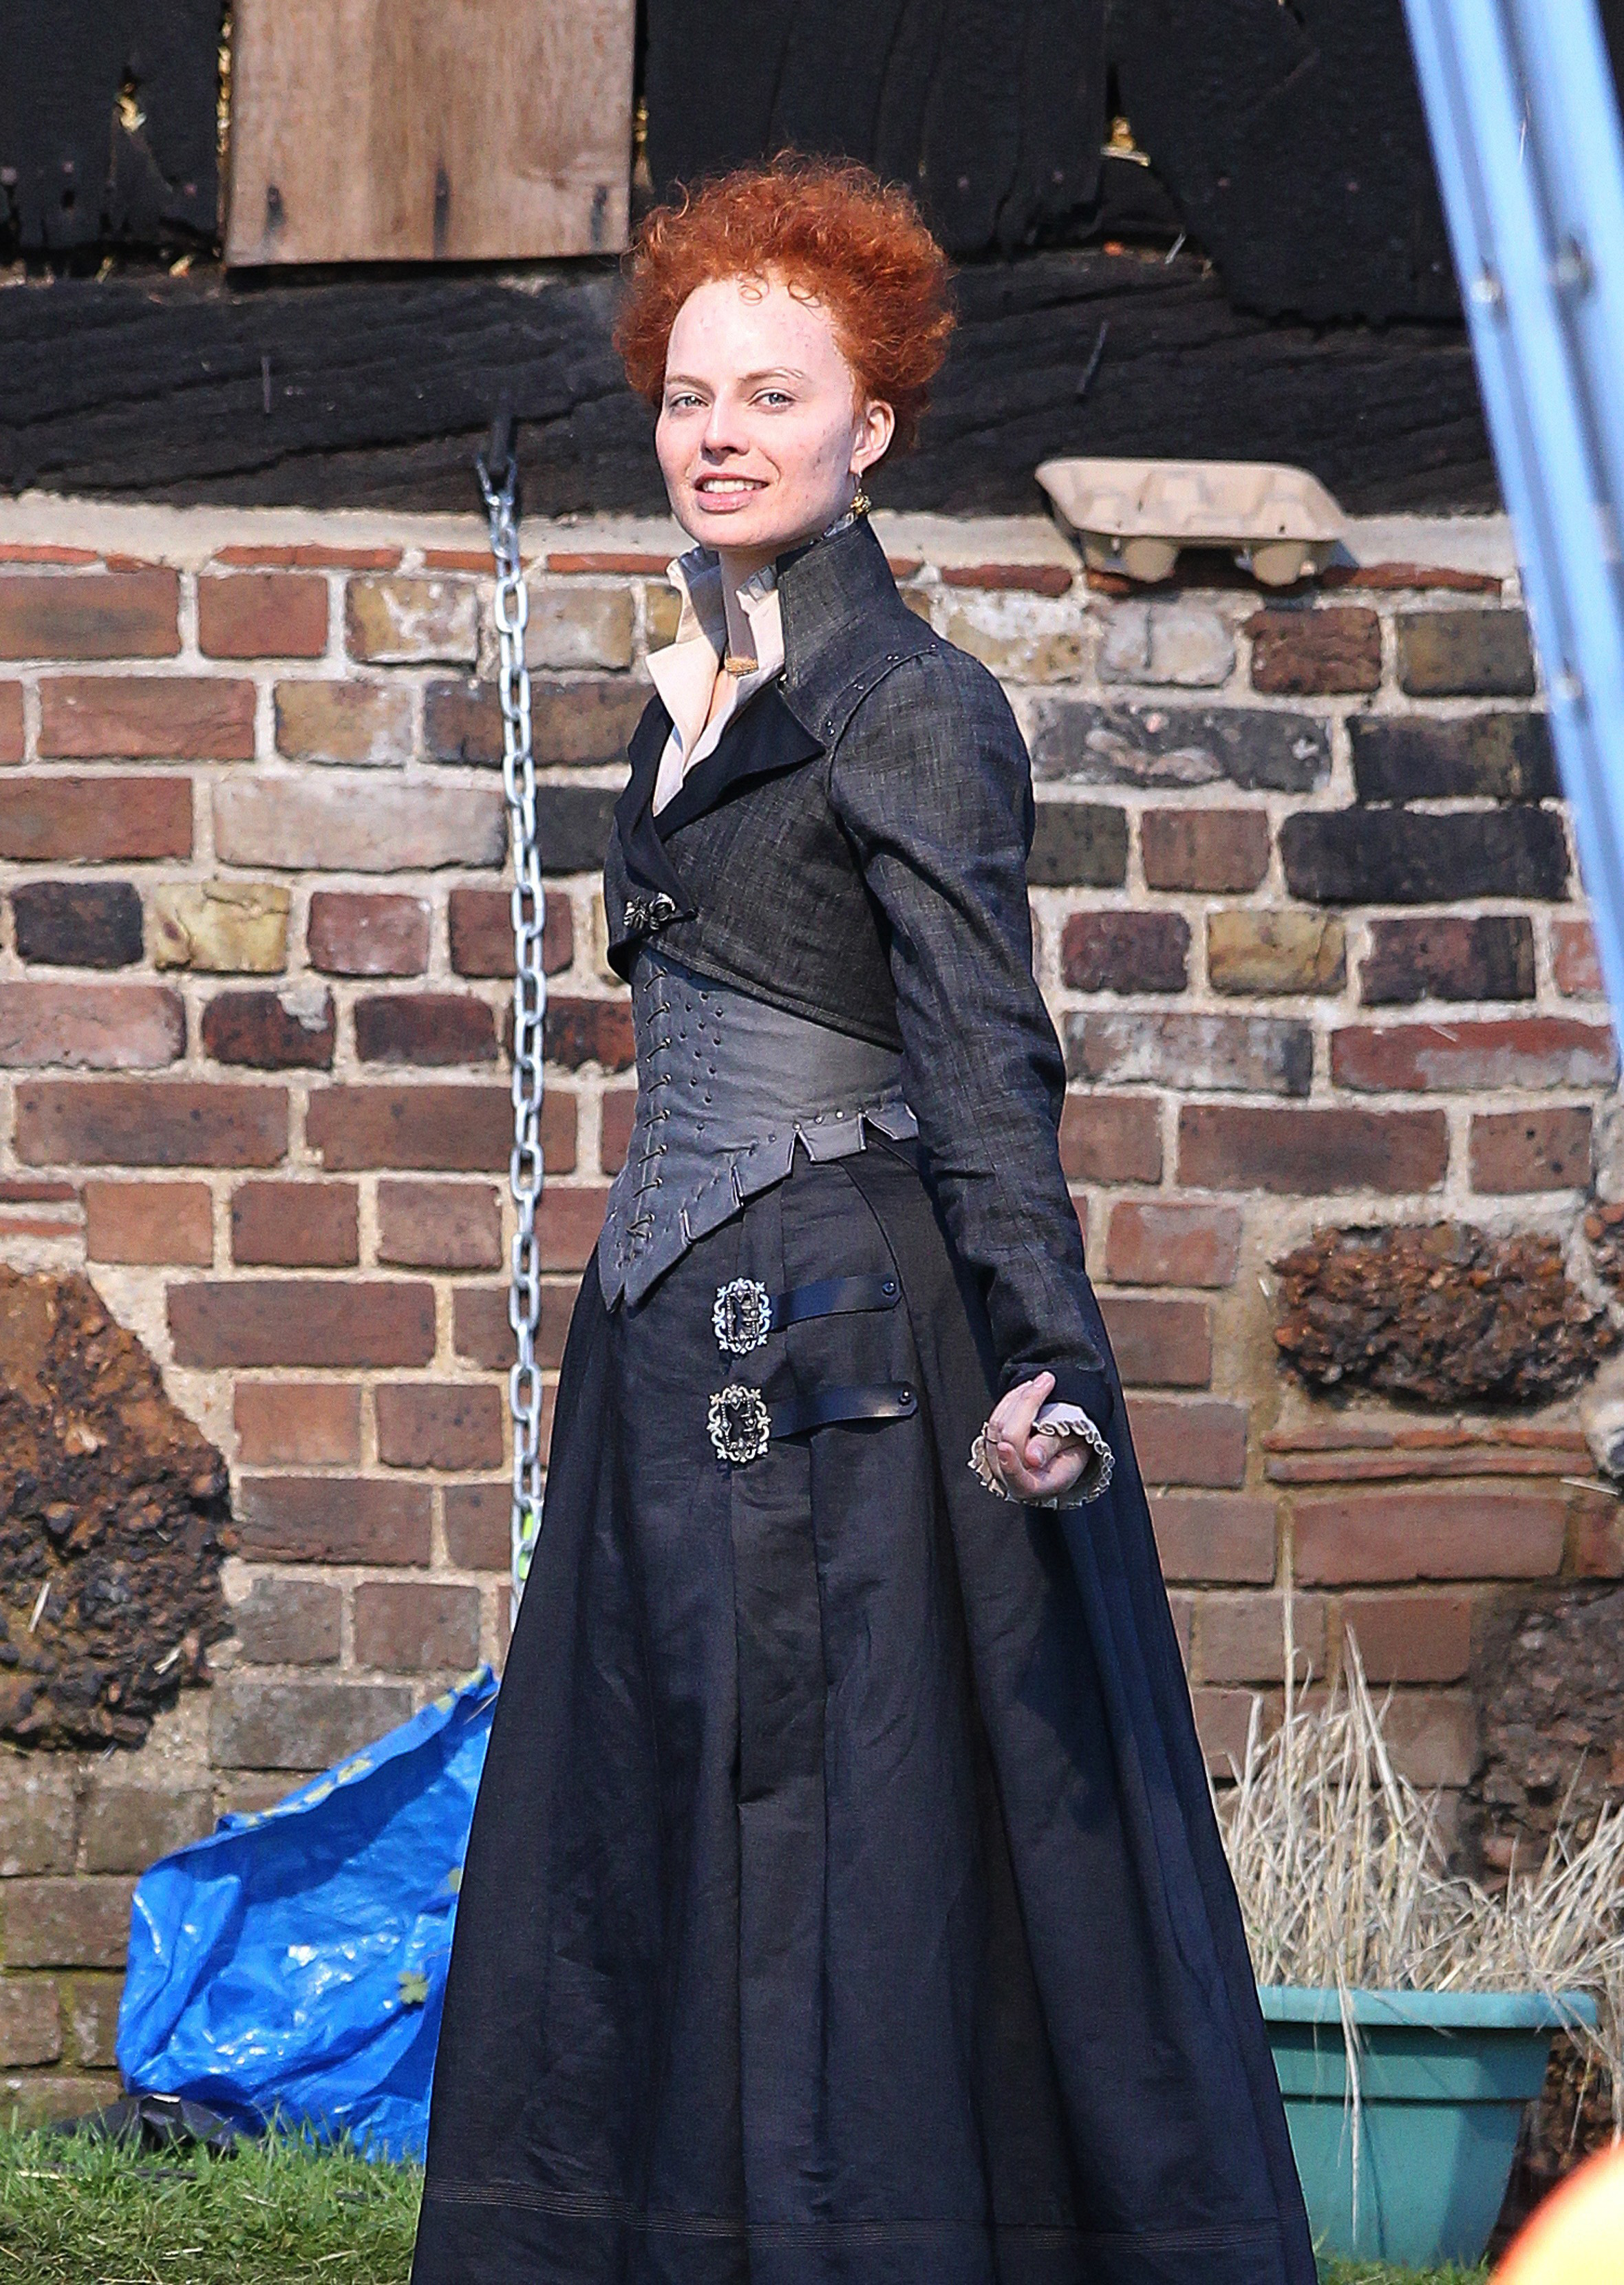 EXCLUSIVE: ***PREMIUM EXCLUSIVE RATES APPLY*** Margot Robbie looks completely unrecognisable as she transforms into Queen Elizabeth I for new film Mary Queen of Scots. The Australian star, 27, was the spitting image of The Virgin Queen as she donned traditional Tudor garb including a corset, jacket and wide buckled skirt to get into character for her new role. <P> Pictured: Margot Robbie <B>Ref: SPL1558320  210817   EXCLUSIVE</B><BR/> Picture by: Flynet - Splash News<BR/> </P><P> <B>Splash News and Pictures</B><BR/> Los Angeles:310-821-2666<BR/> New York:212-619-2666<BR/> London:870-934-2666<BR/> photodesk@splashnews.com<BR/> </P>